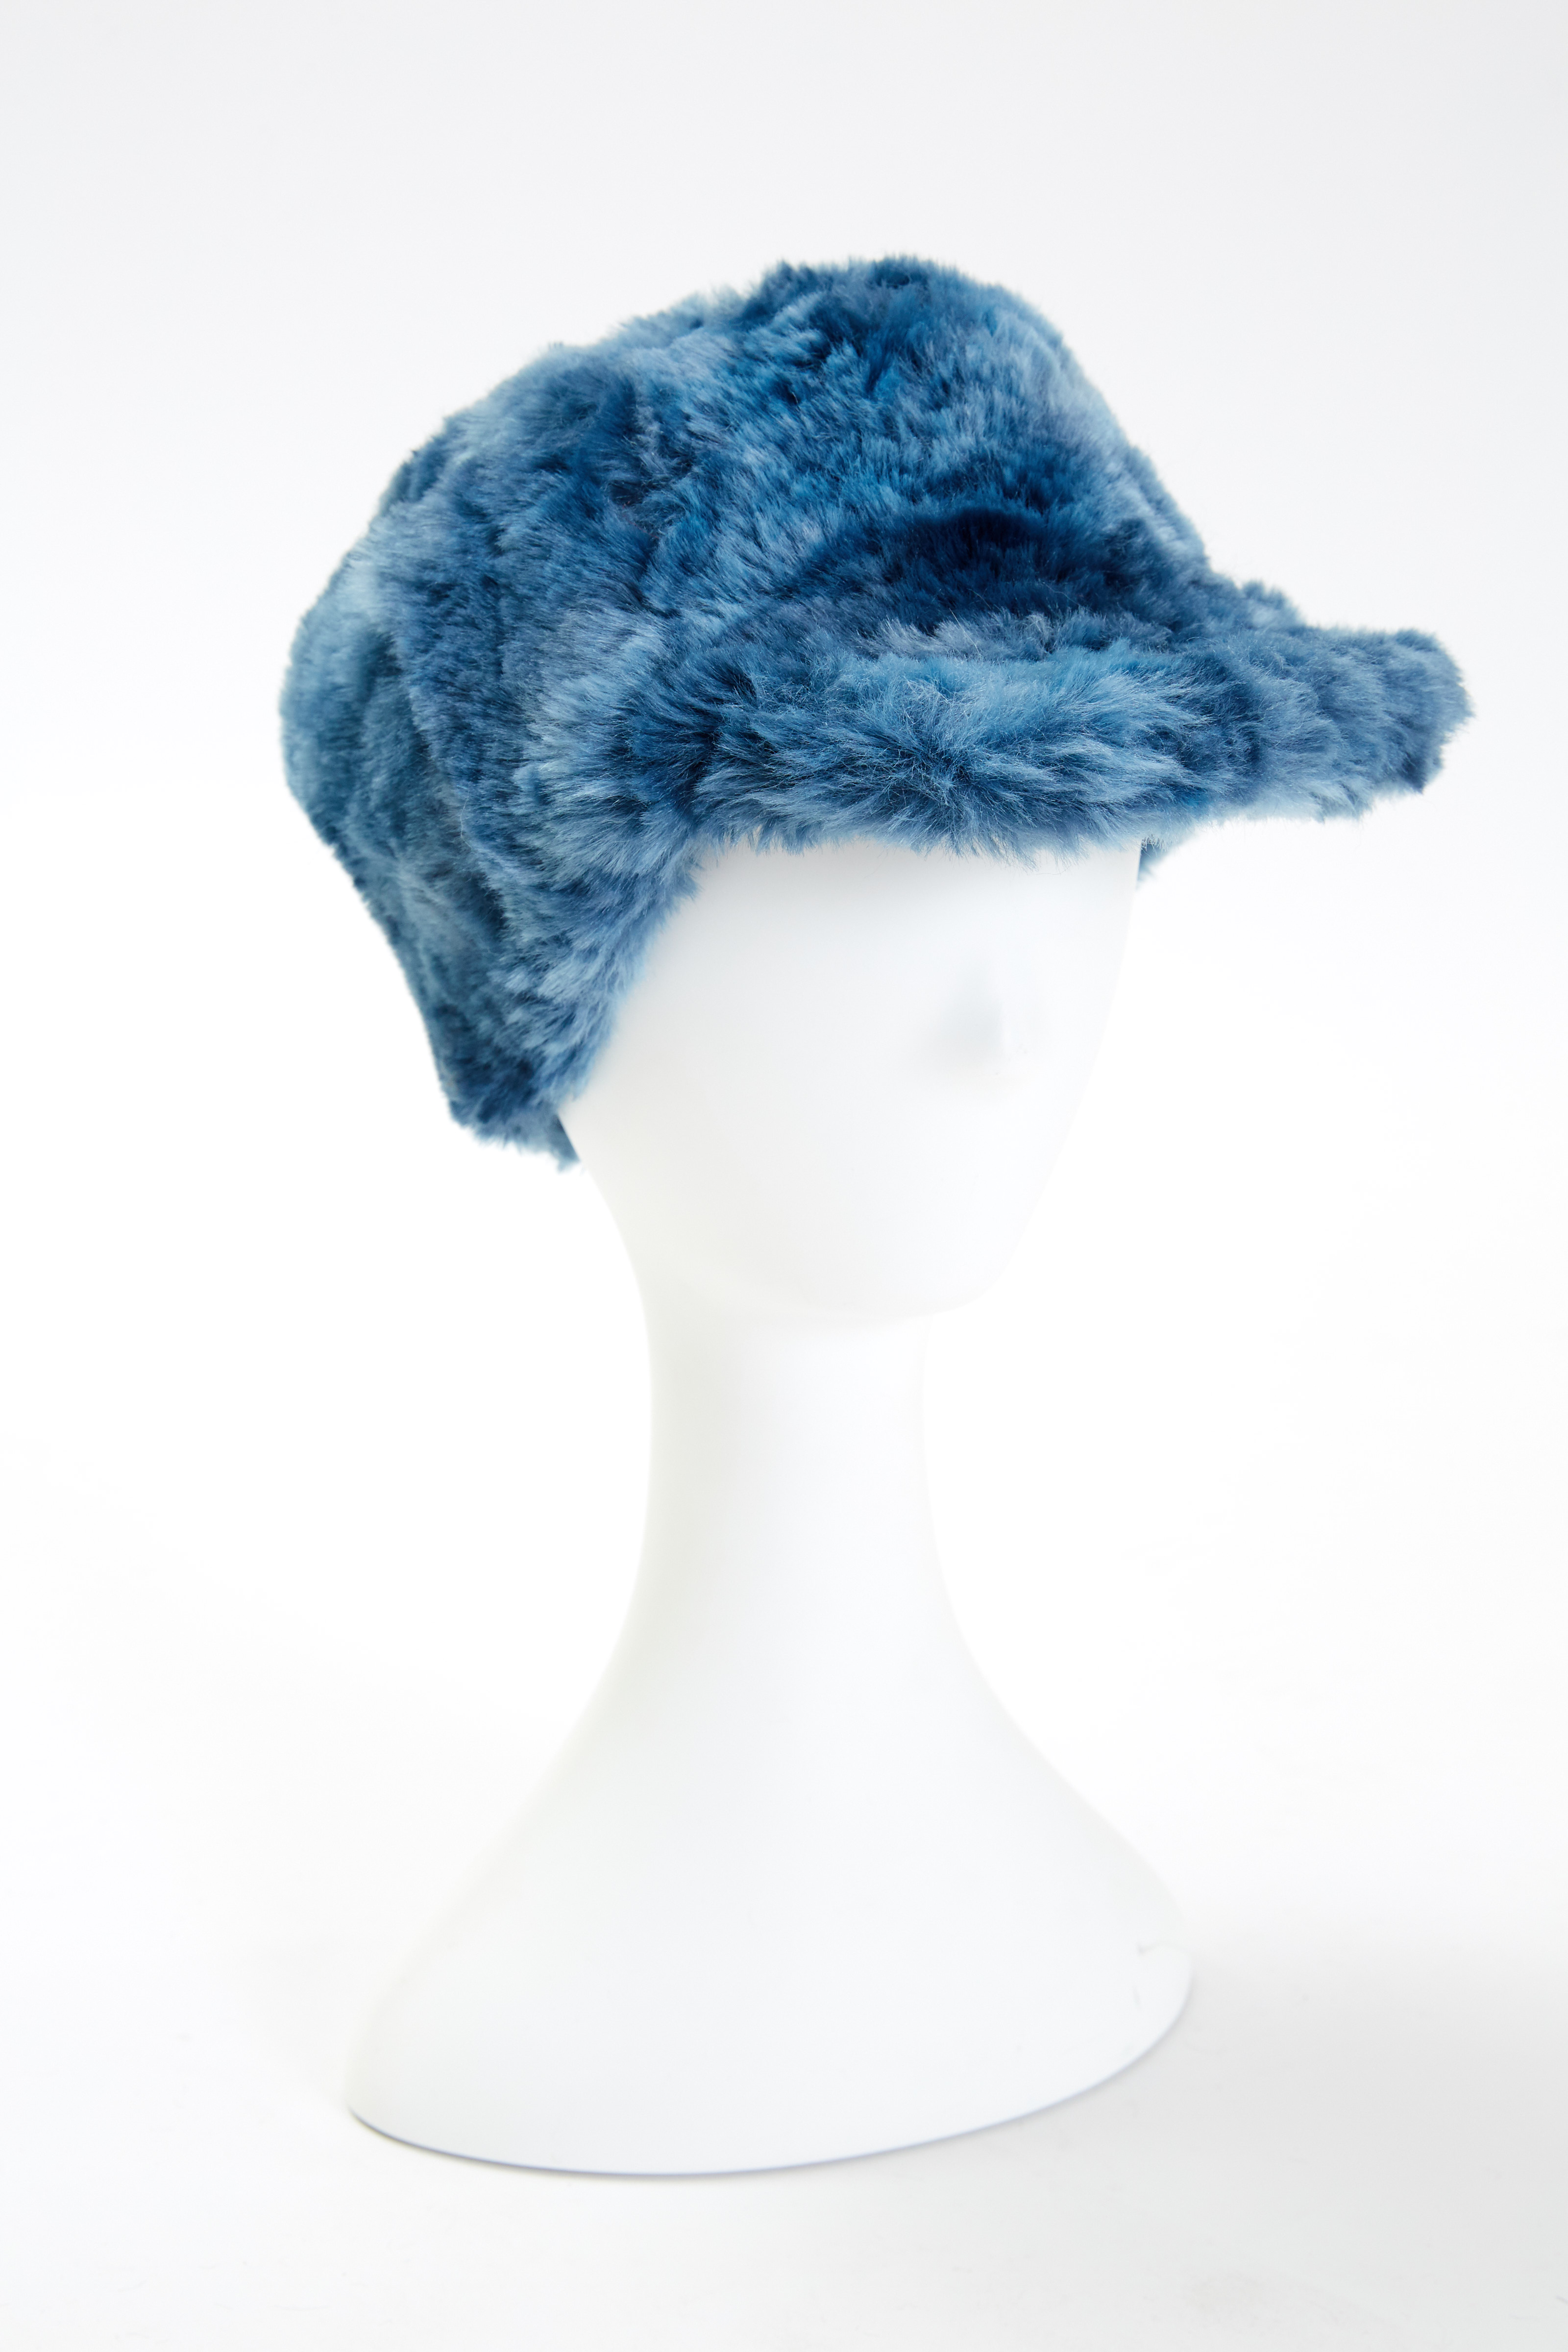 Baseball Cap - Blue by Maison Atia on curated-crowd.com